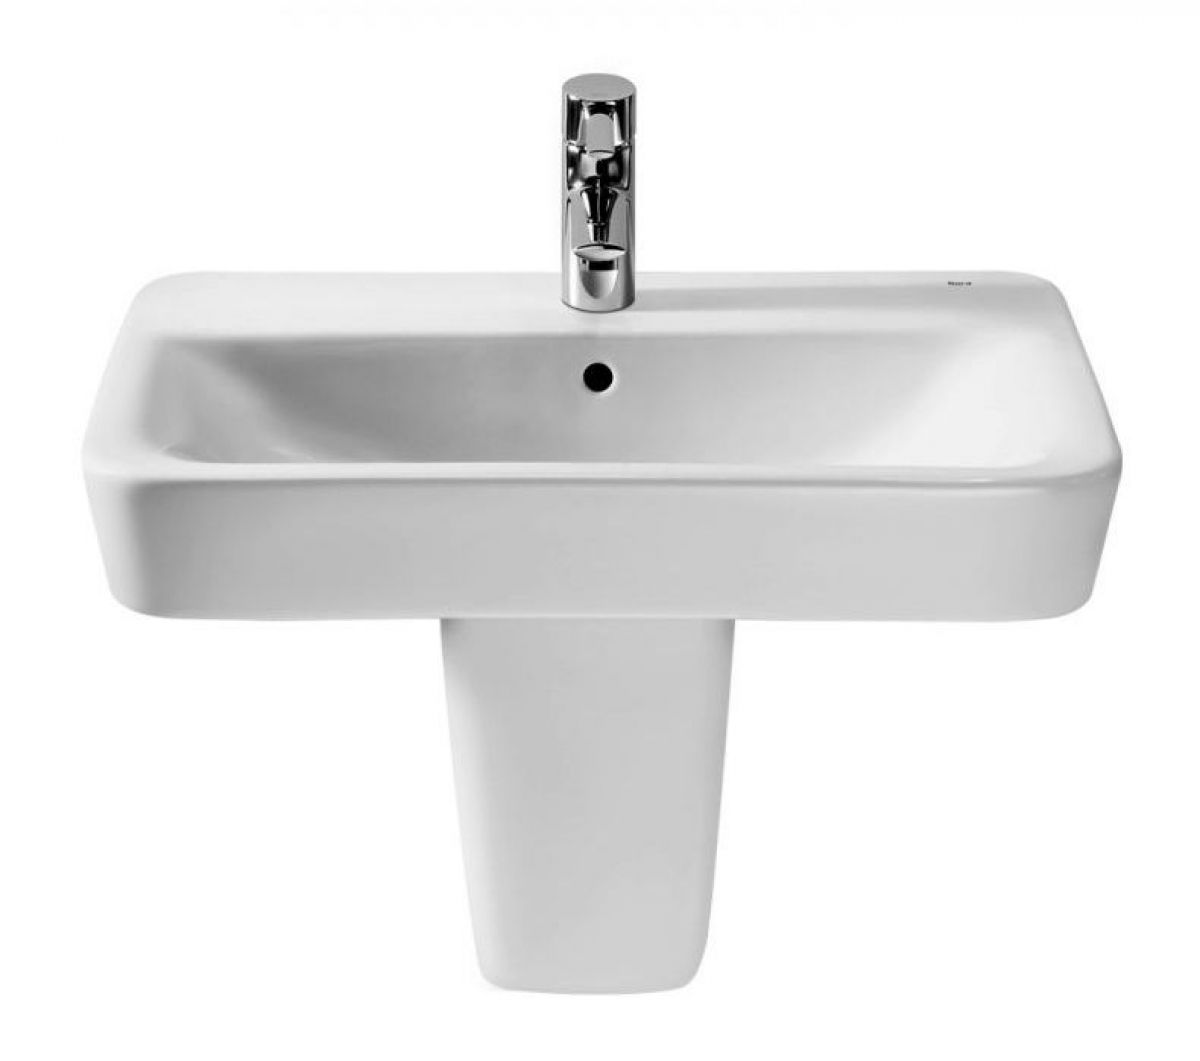 roca bathroom sinks roca senso square bathroom sink uk bathrooms 14235